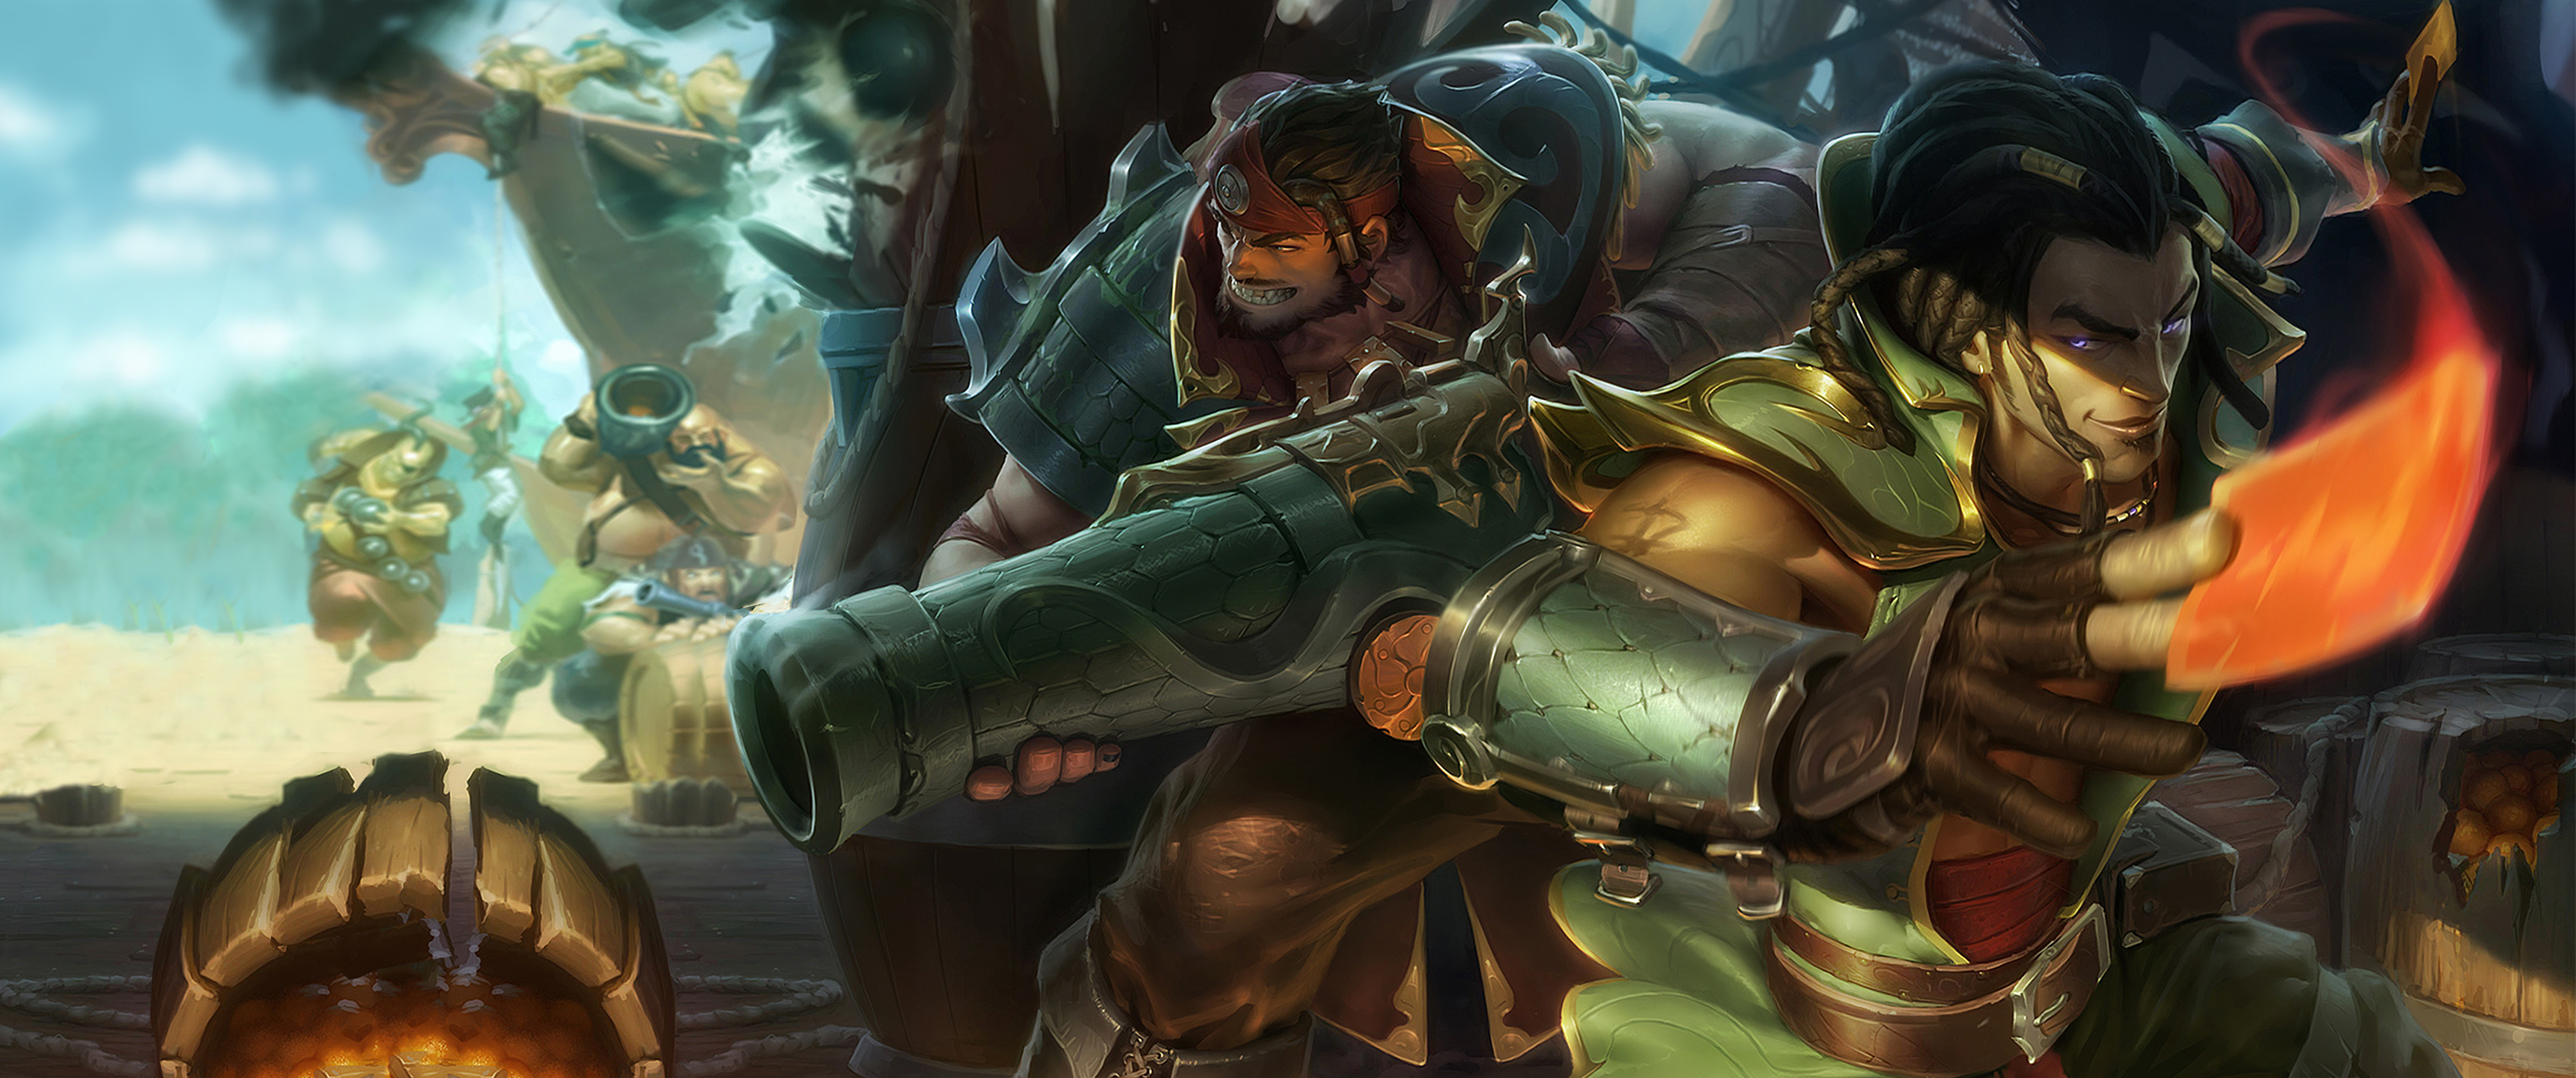 The cutthroats full hd wallpaper and background image 3440x1440 video game league of legends graves league of legends pirate twisted fate voltagebd Images